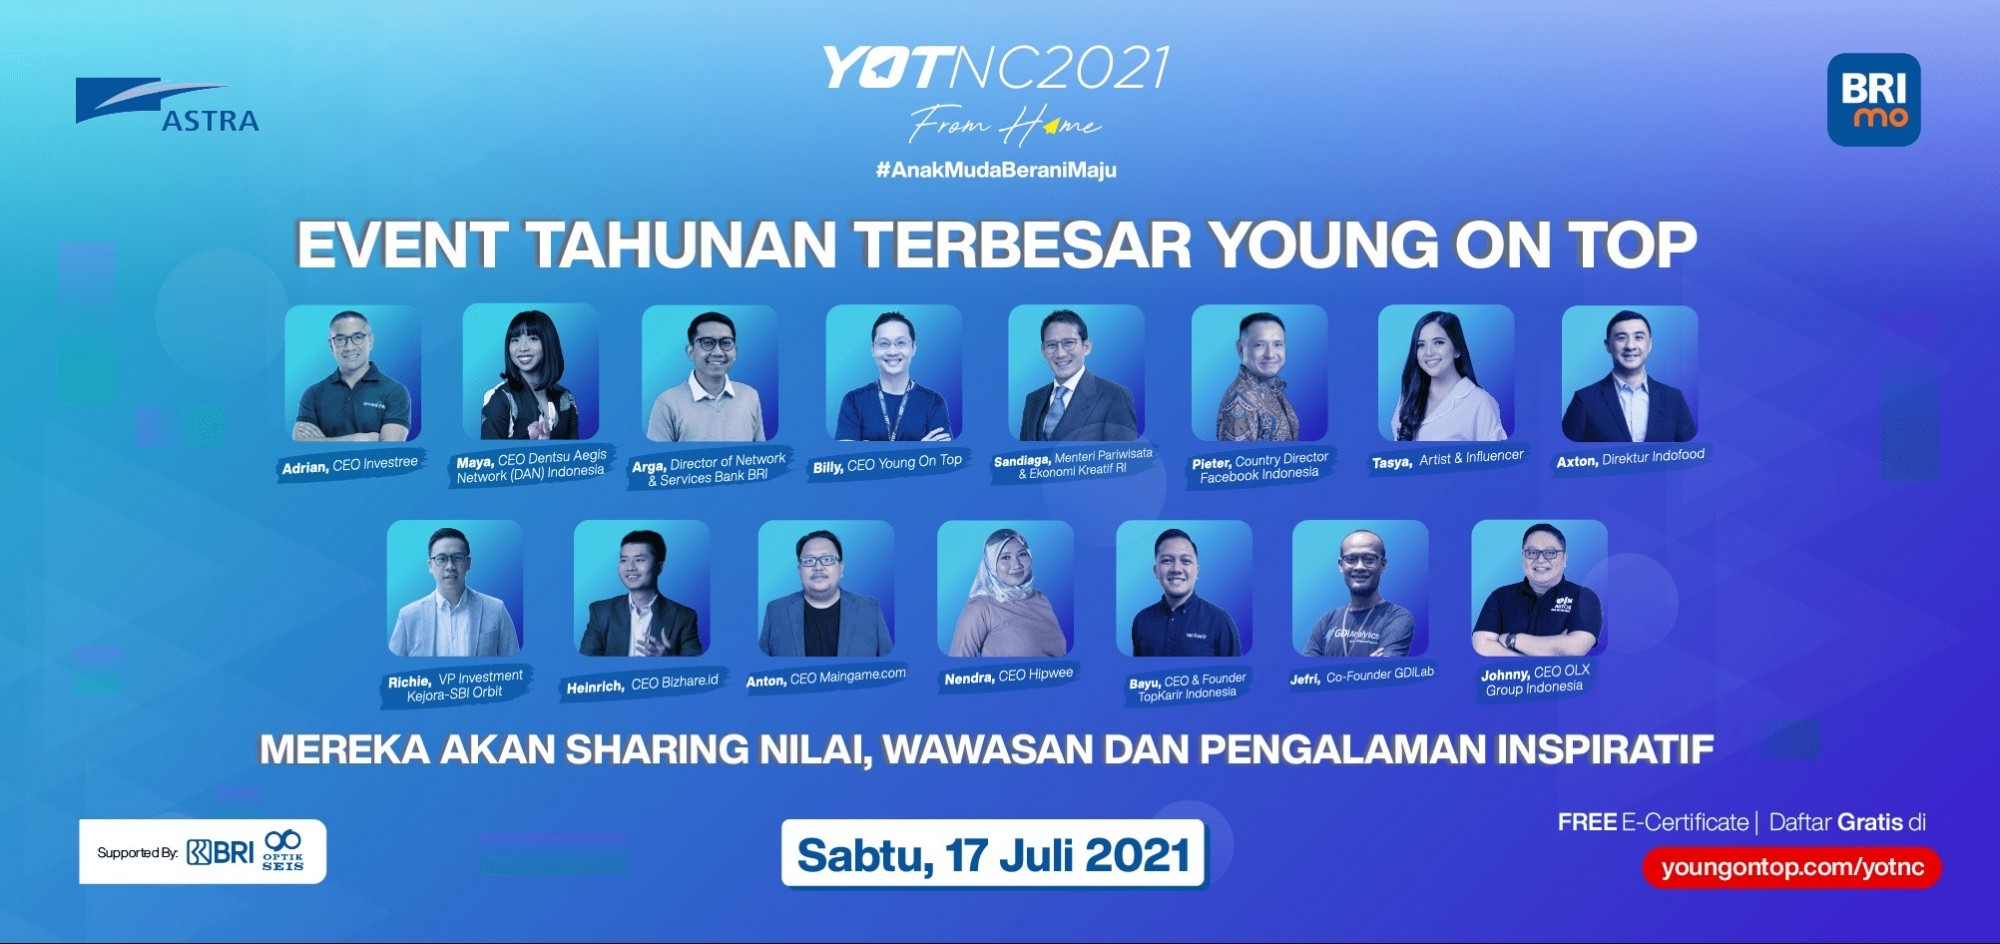 YOTNC 2021 FROM HOME